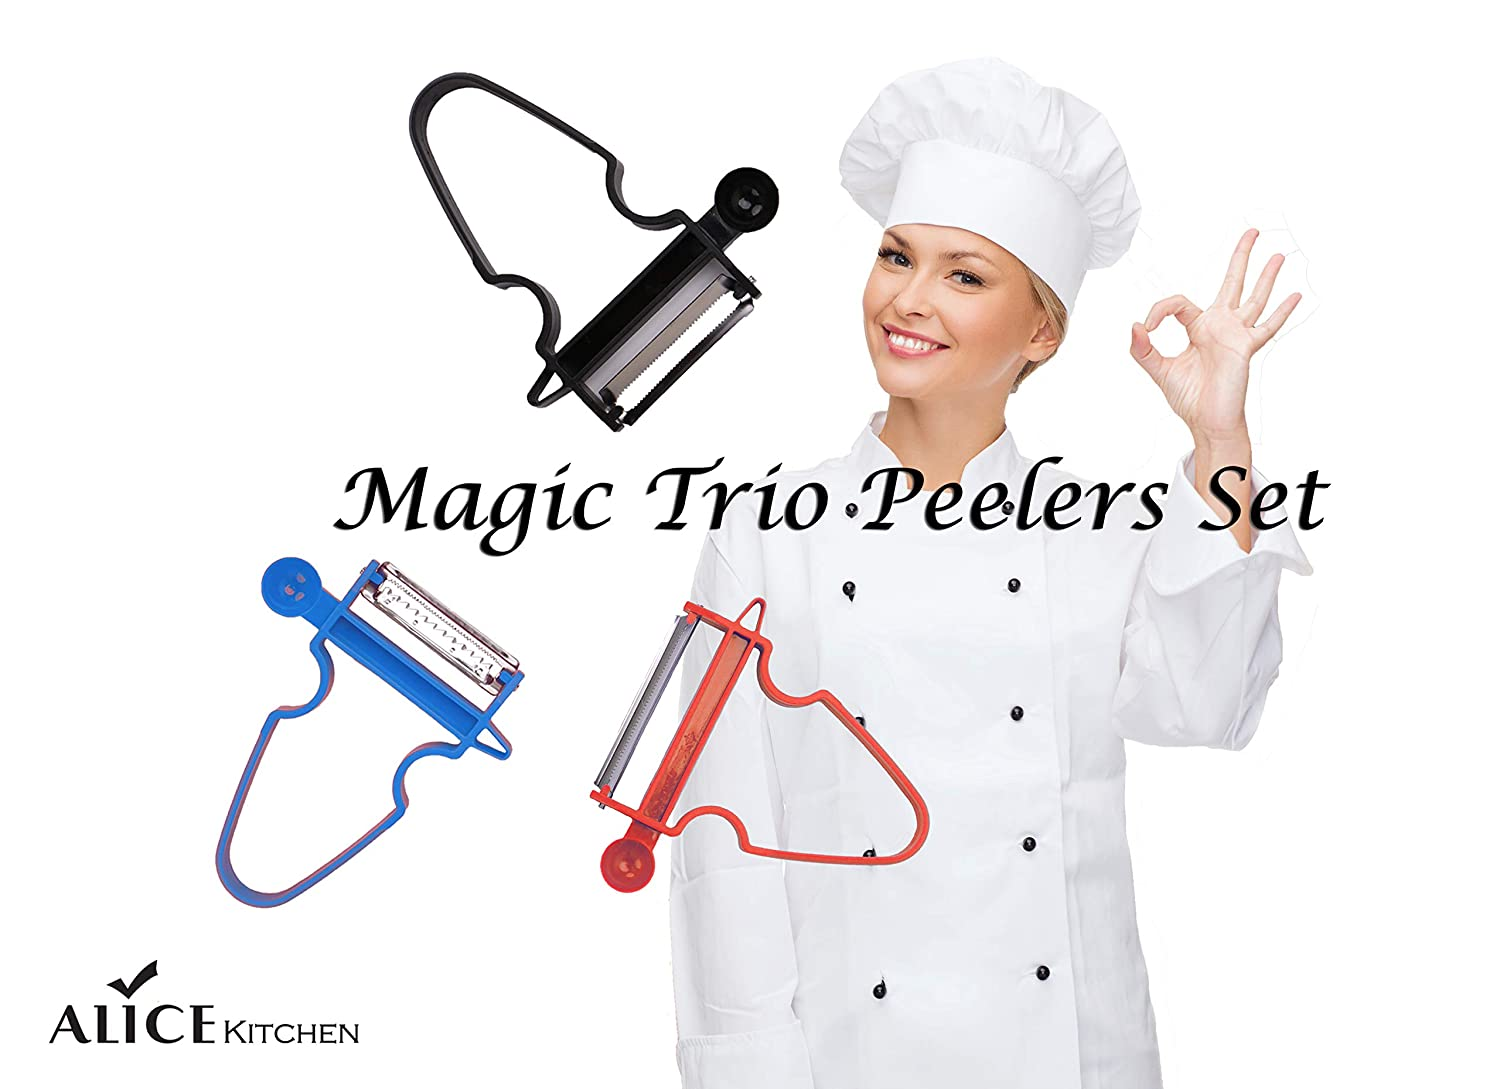 Magic Trio Peelers Set of 3,Quick,Simple,Convenient Slicer Kitchen Tool Set for Any Vegetables and Fruits by Alice Kitchen BHBUSAZIN029315